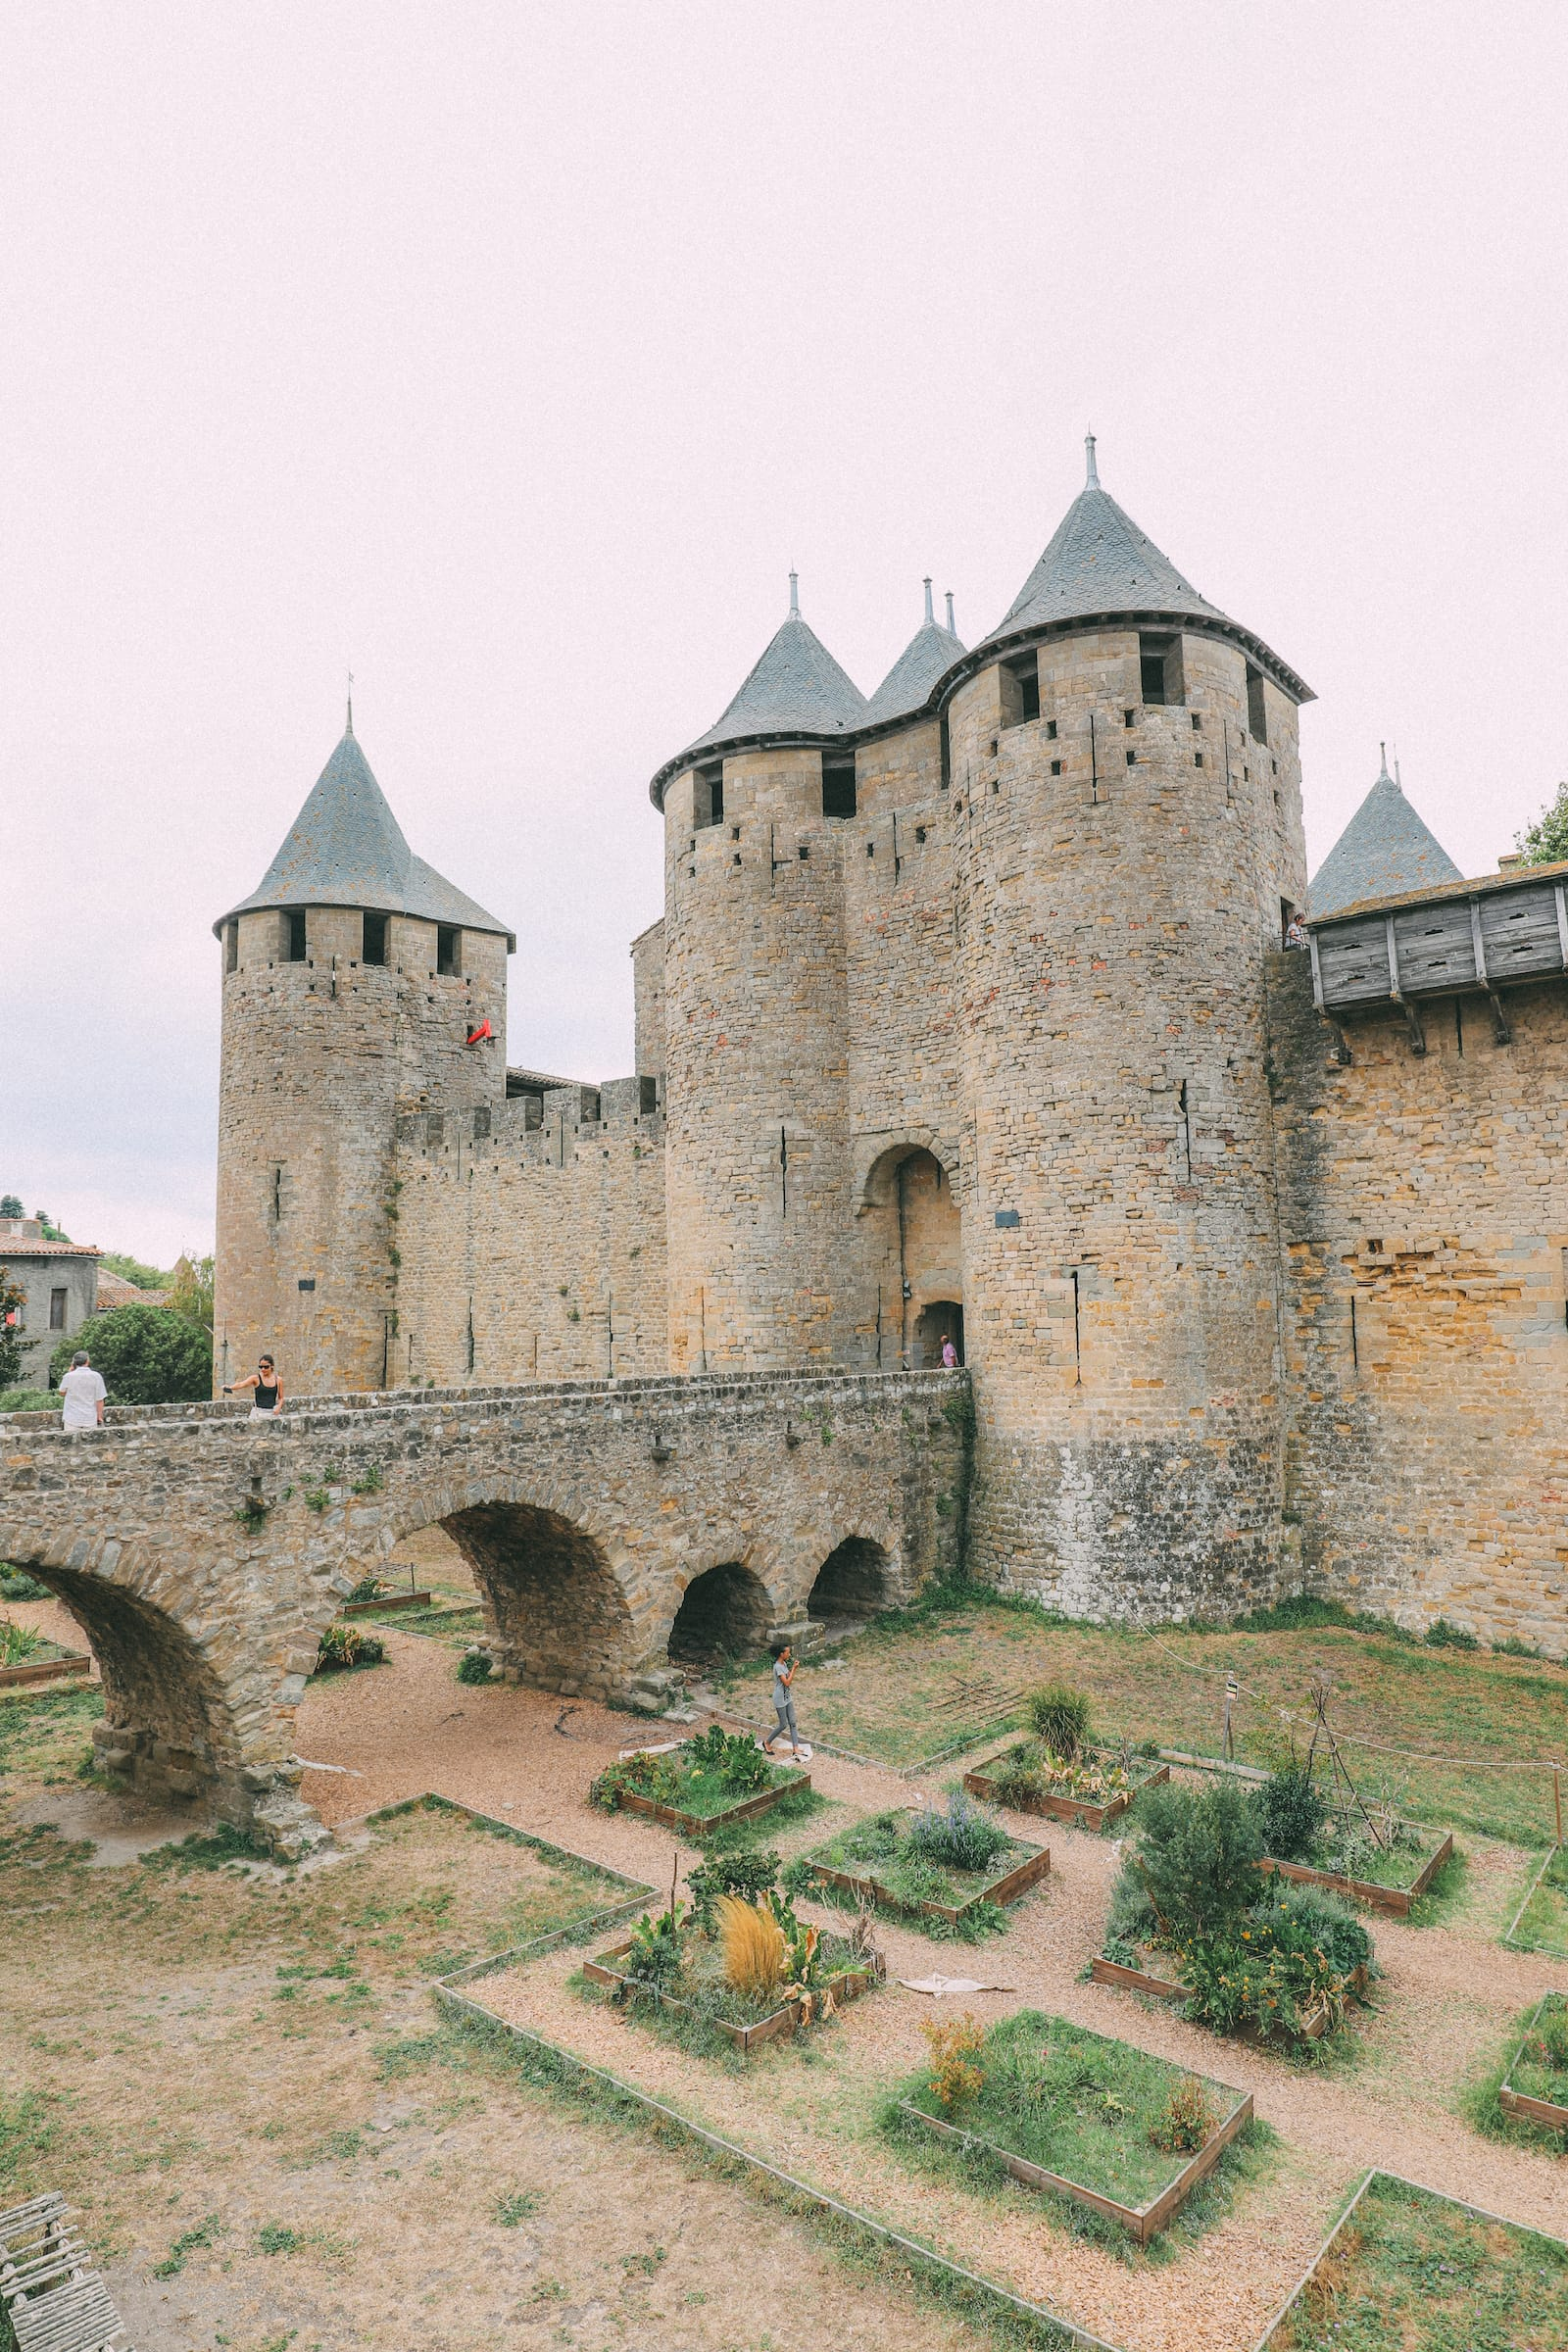 Photos And Postcards From Carcassonne In The South Of France... (17)